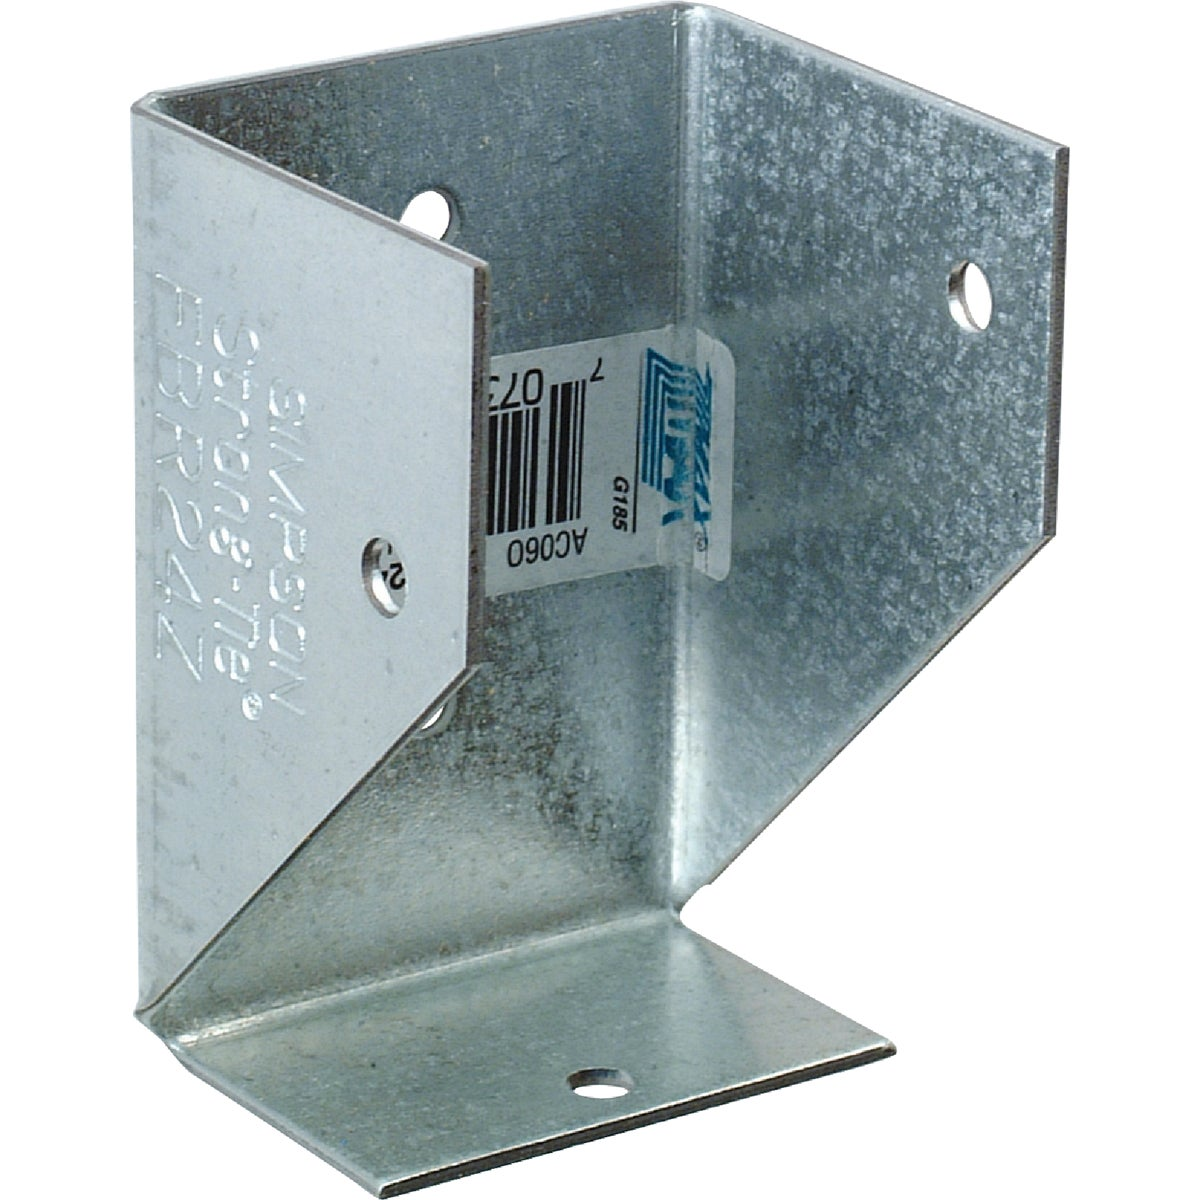 FENCE BRACKET - FBR24Z by Simpson Strong Tie